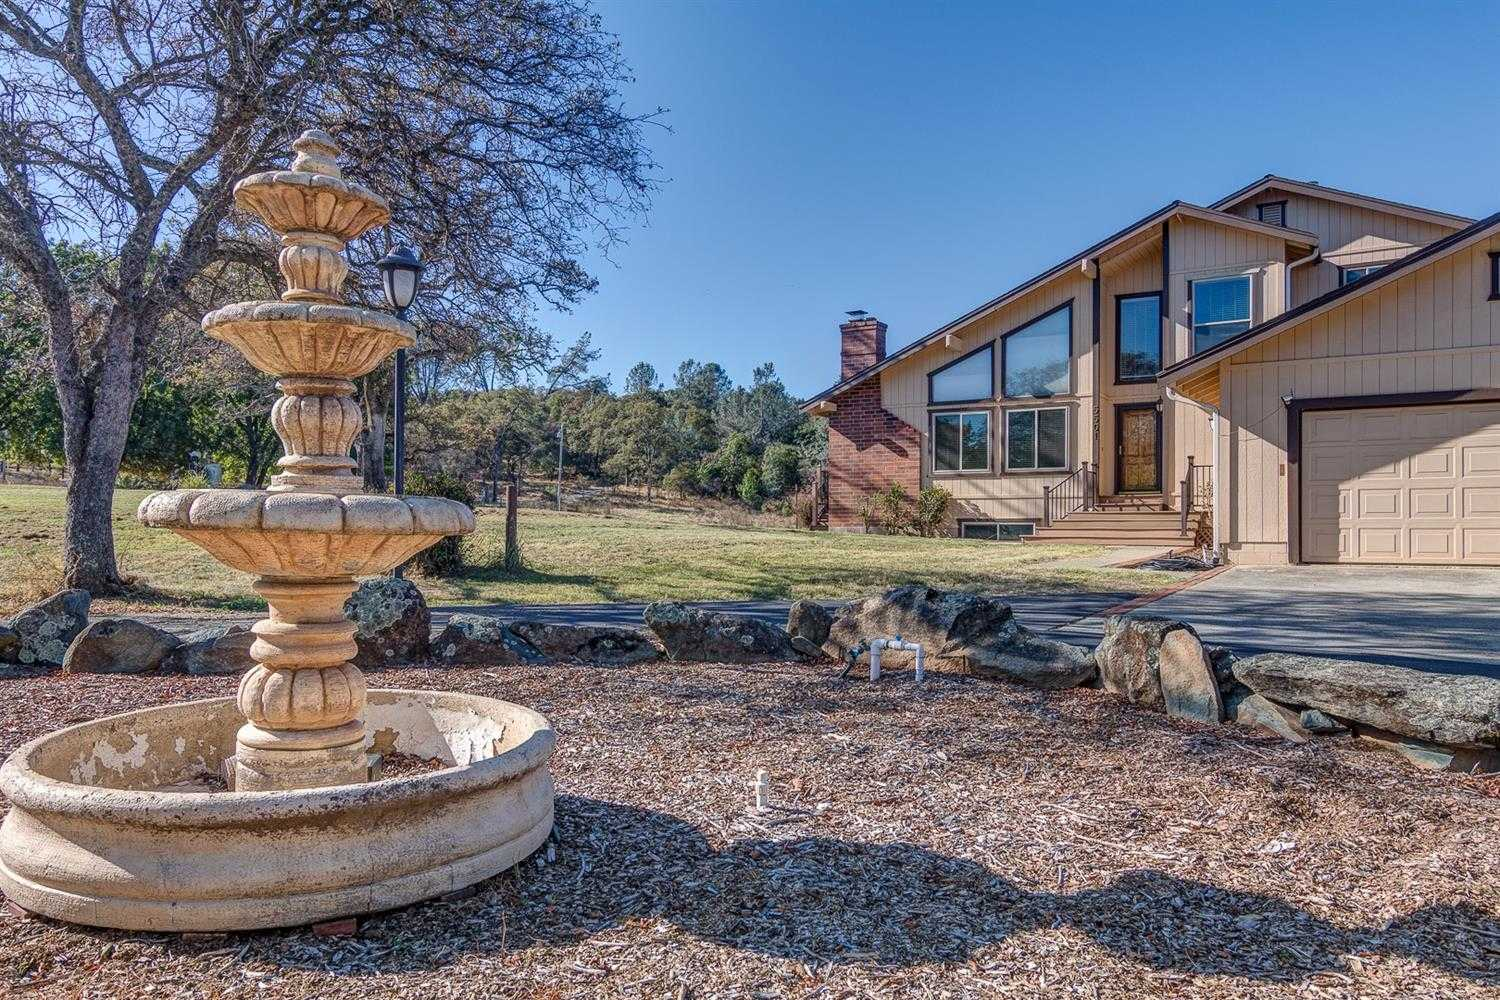 $1,275,000 - 5Br/4Ba -  for Sale in Heredia Trail, Lincoln